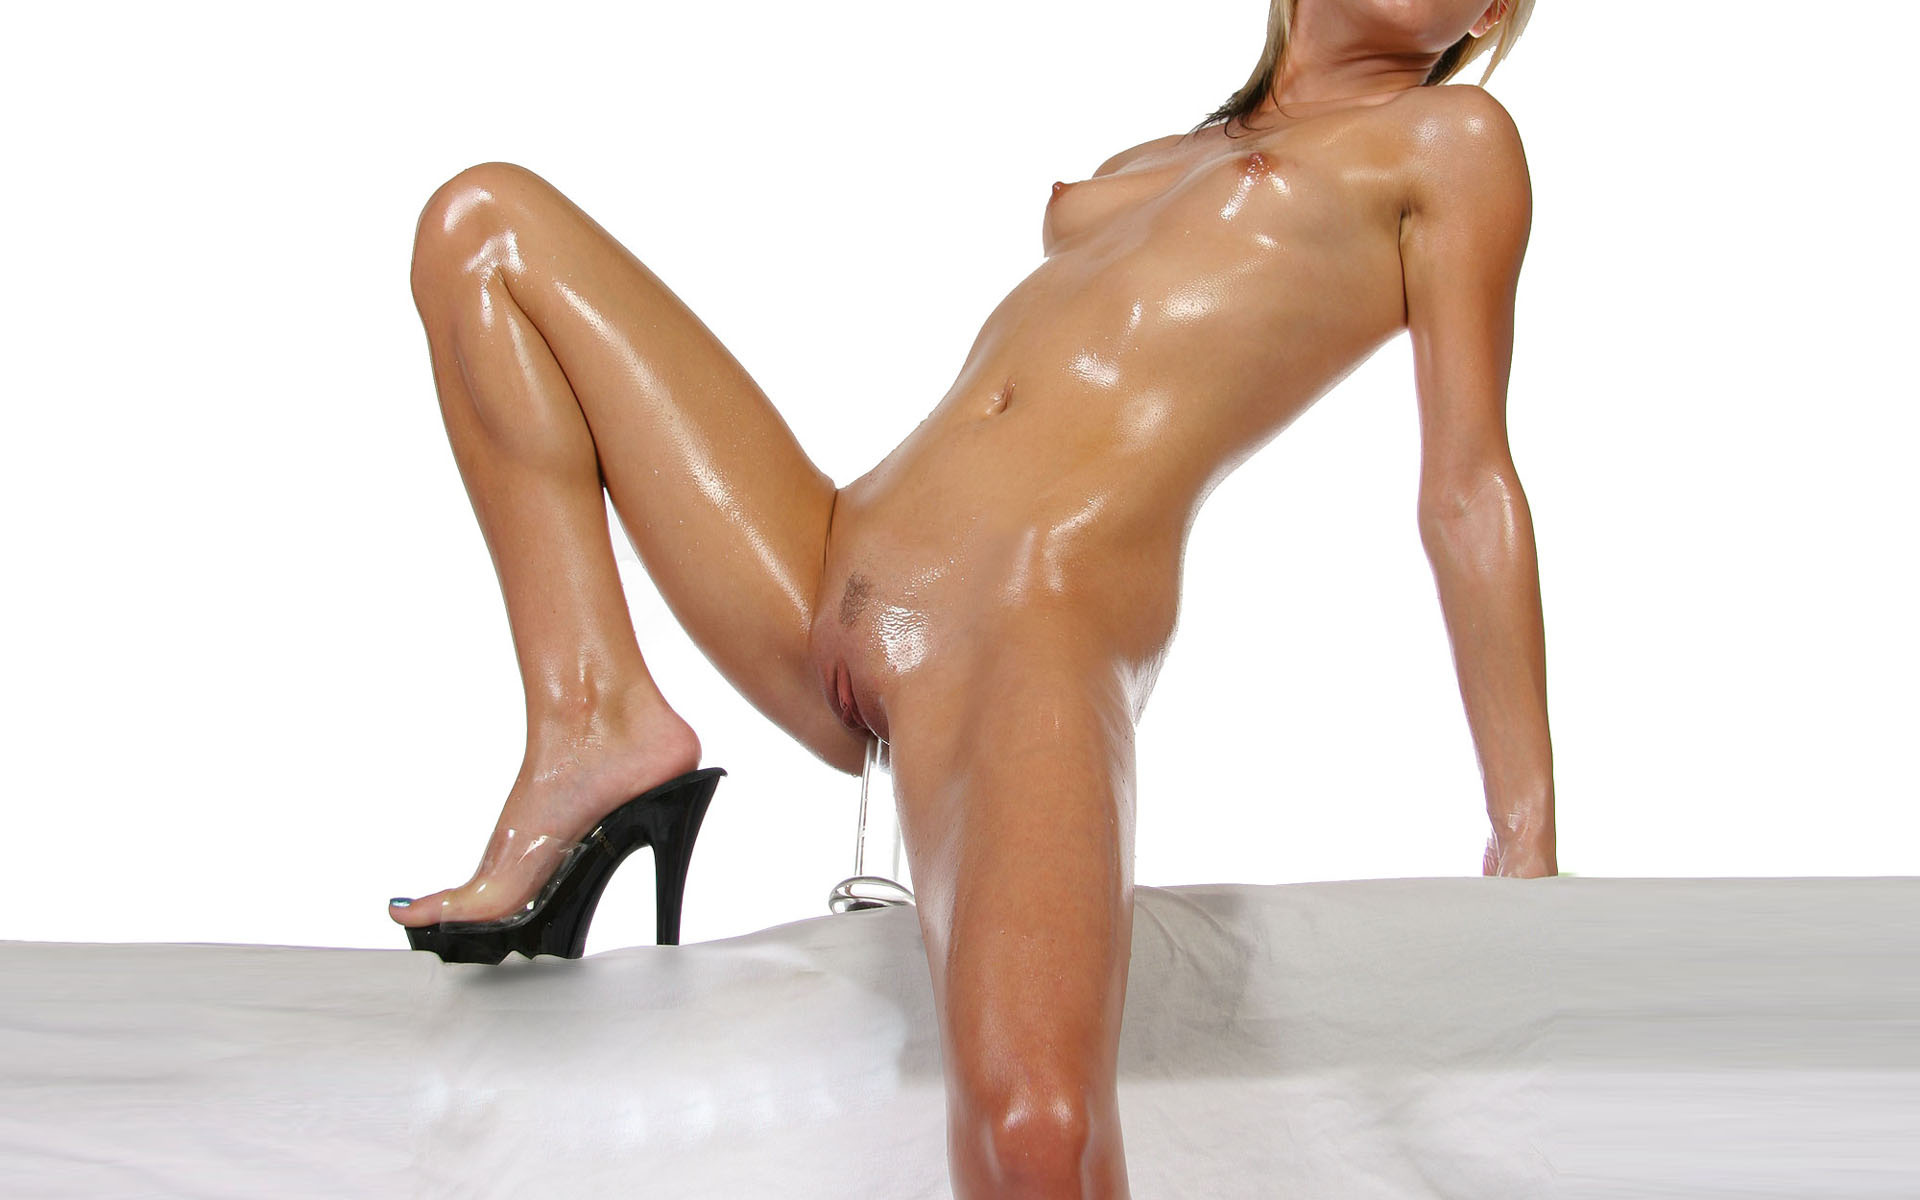 Young girls oiled up nude